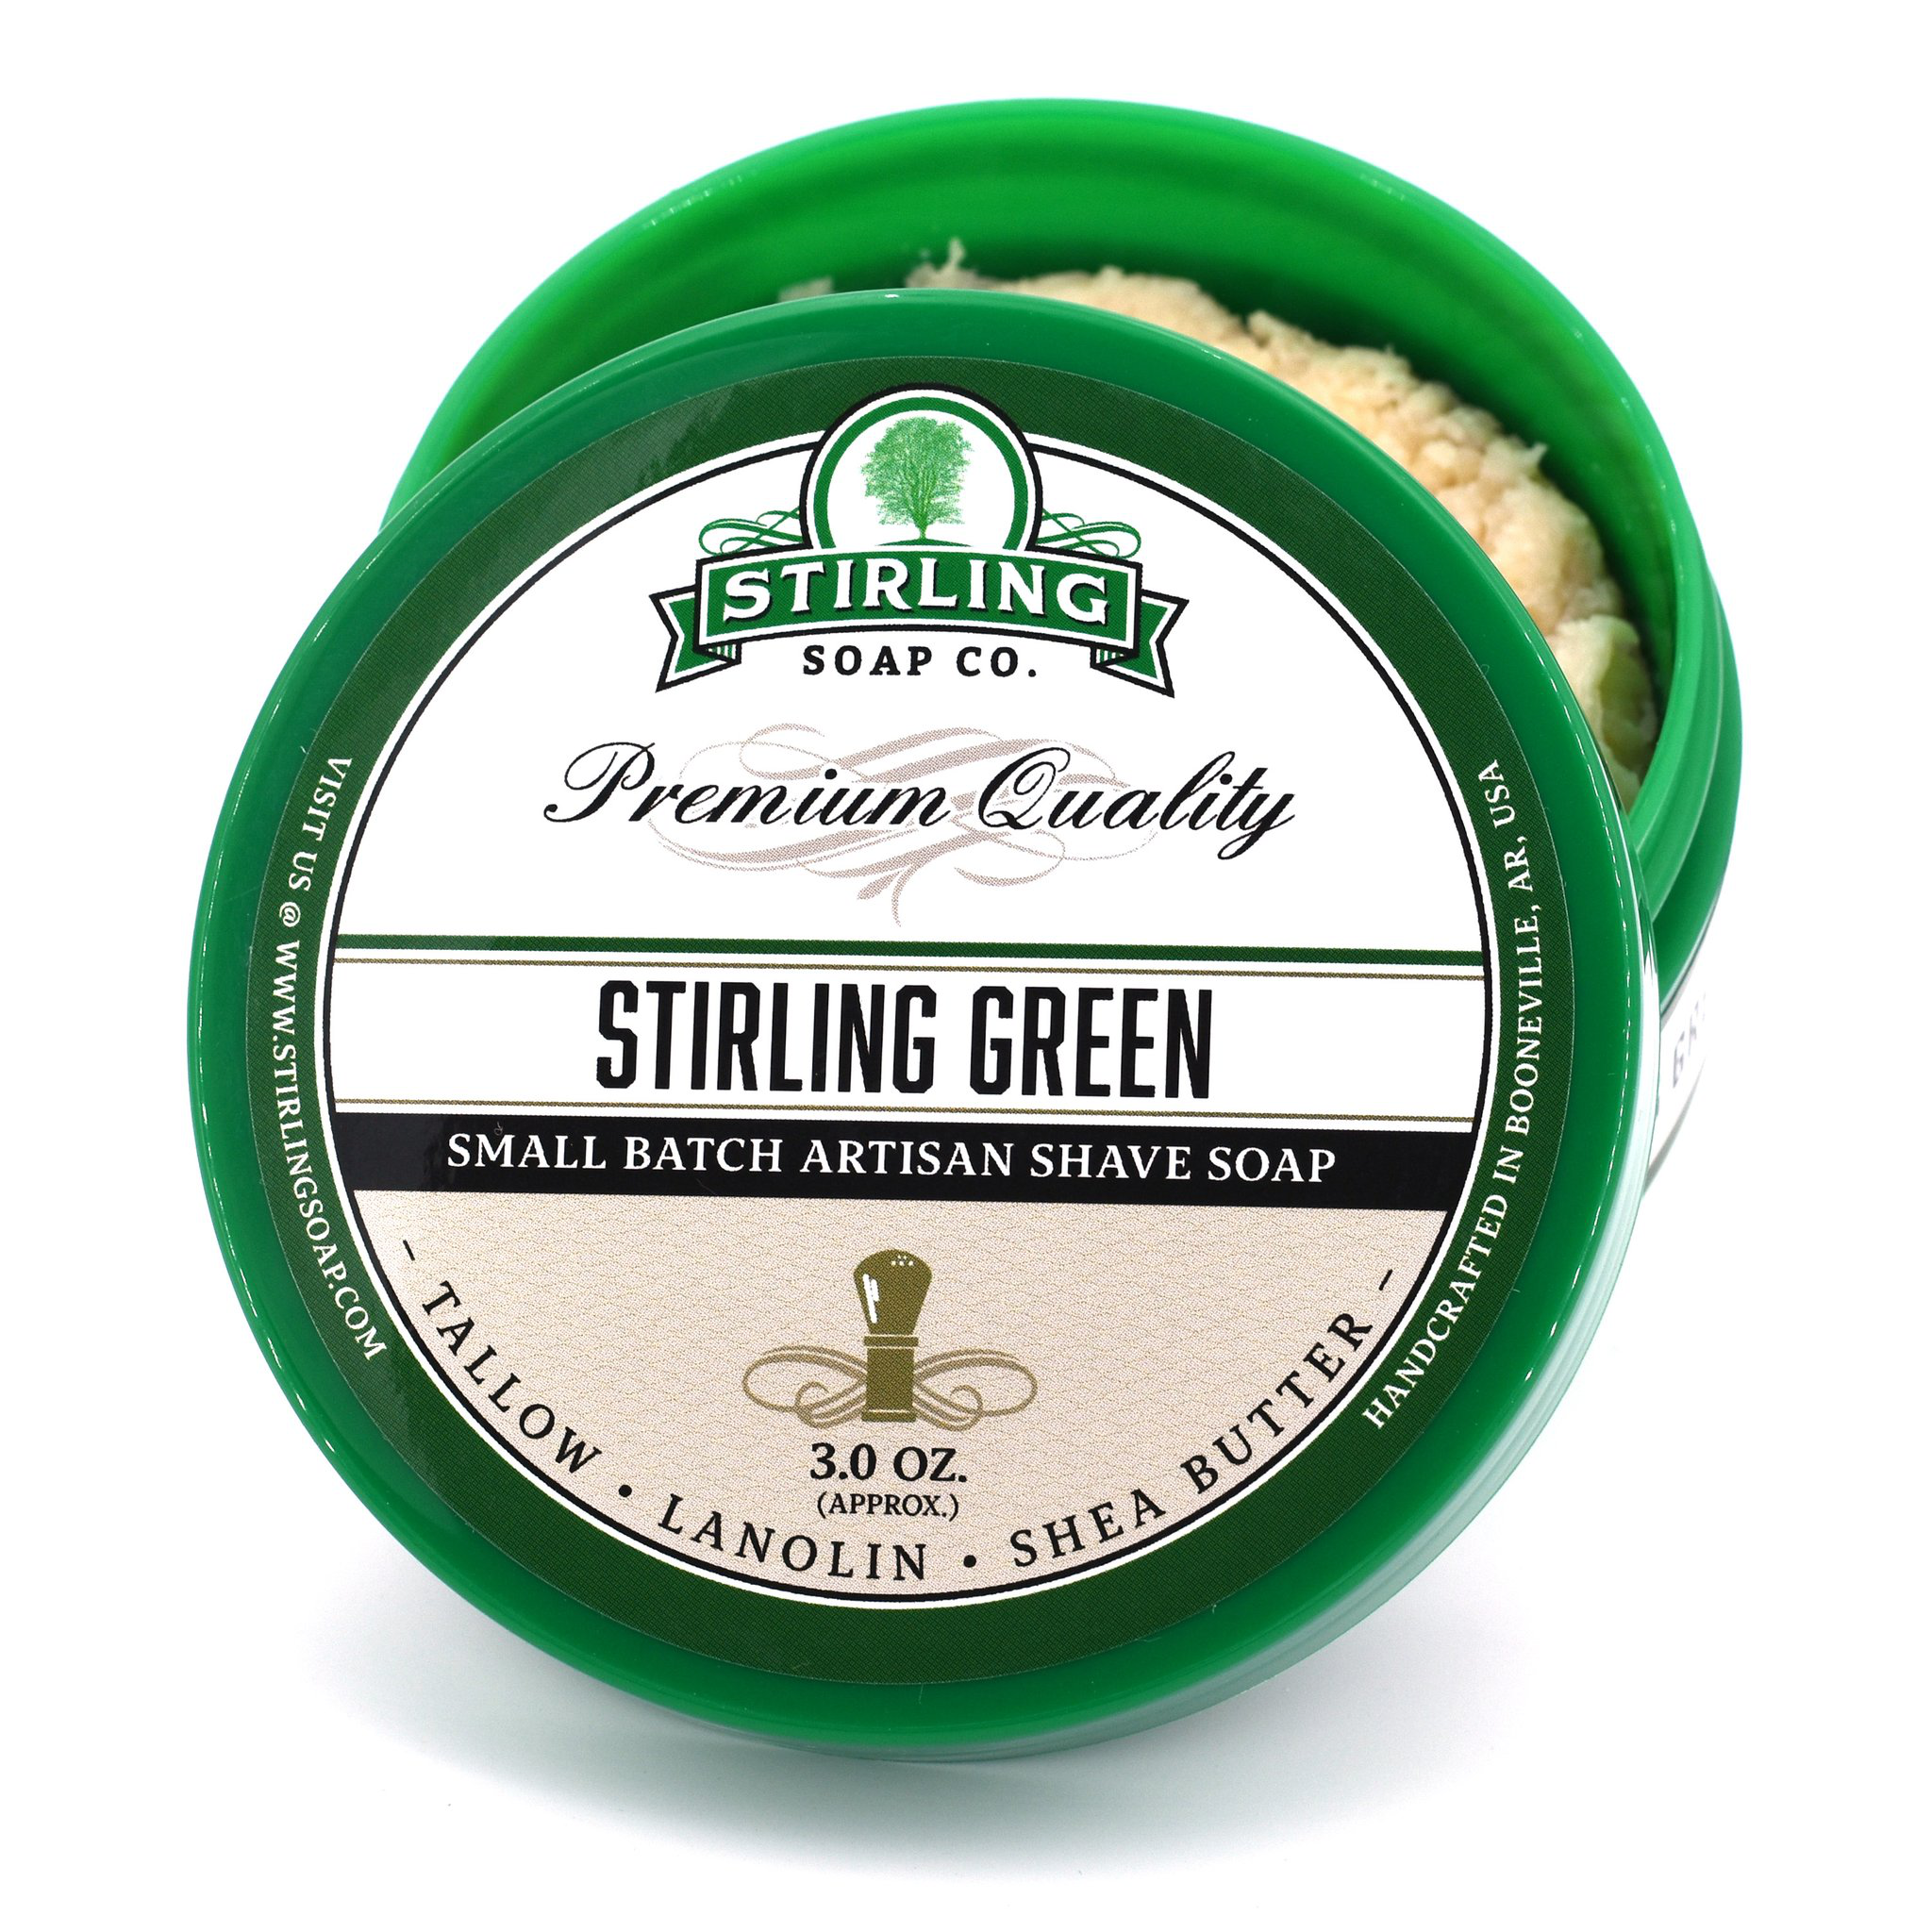 Stirling Soap Co. - Stirling Green - Soap image